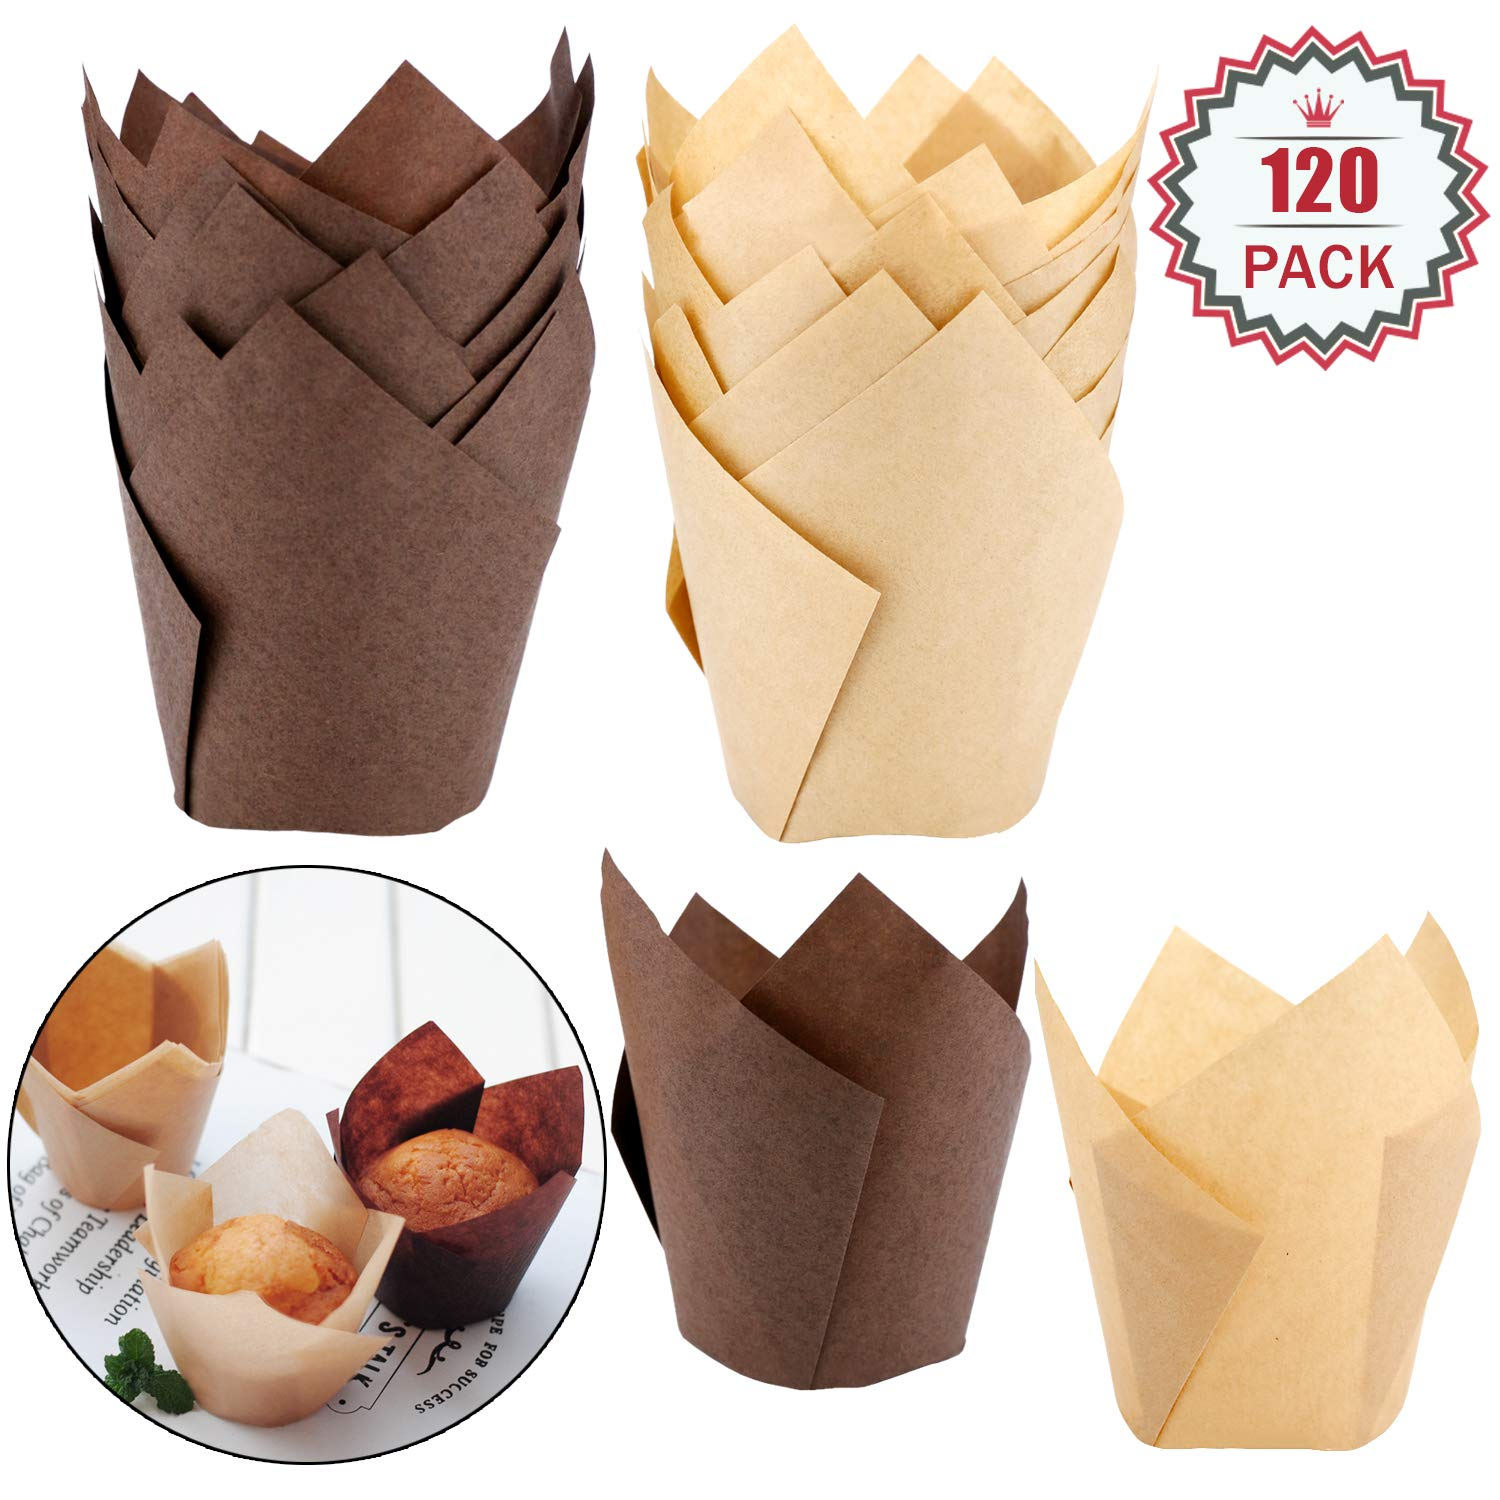 120 Pieces Tulip Cupcake Liner Baking Cups Muffin Tins Treat Cups for Weddings, Birthdays, Baby Showers,Brown and Natural by Augshy